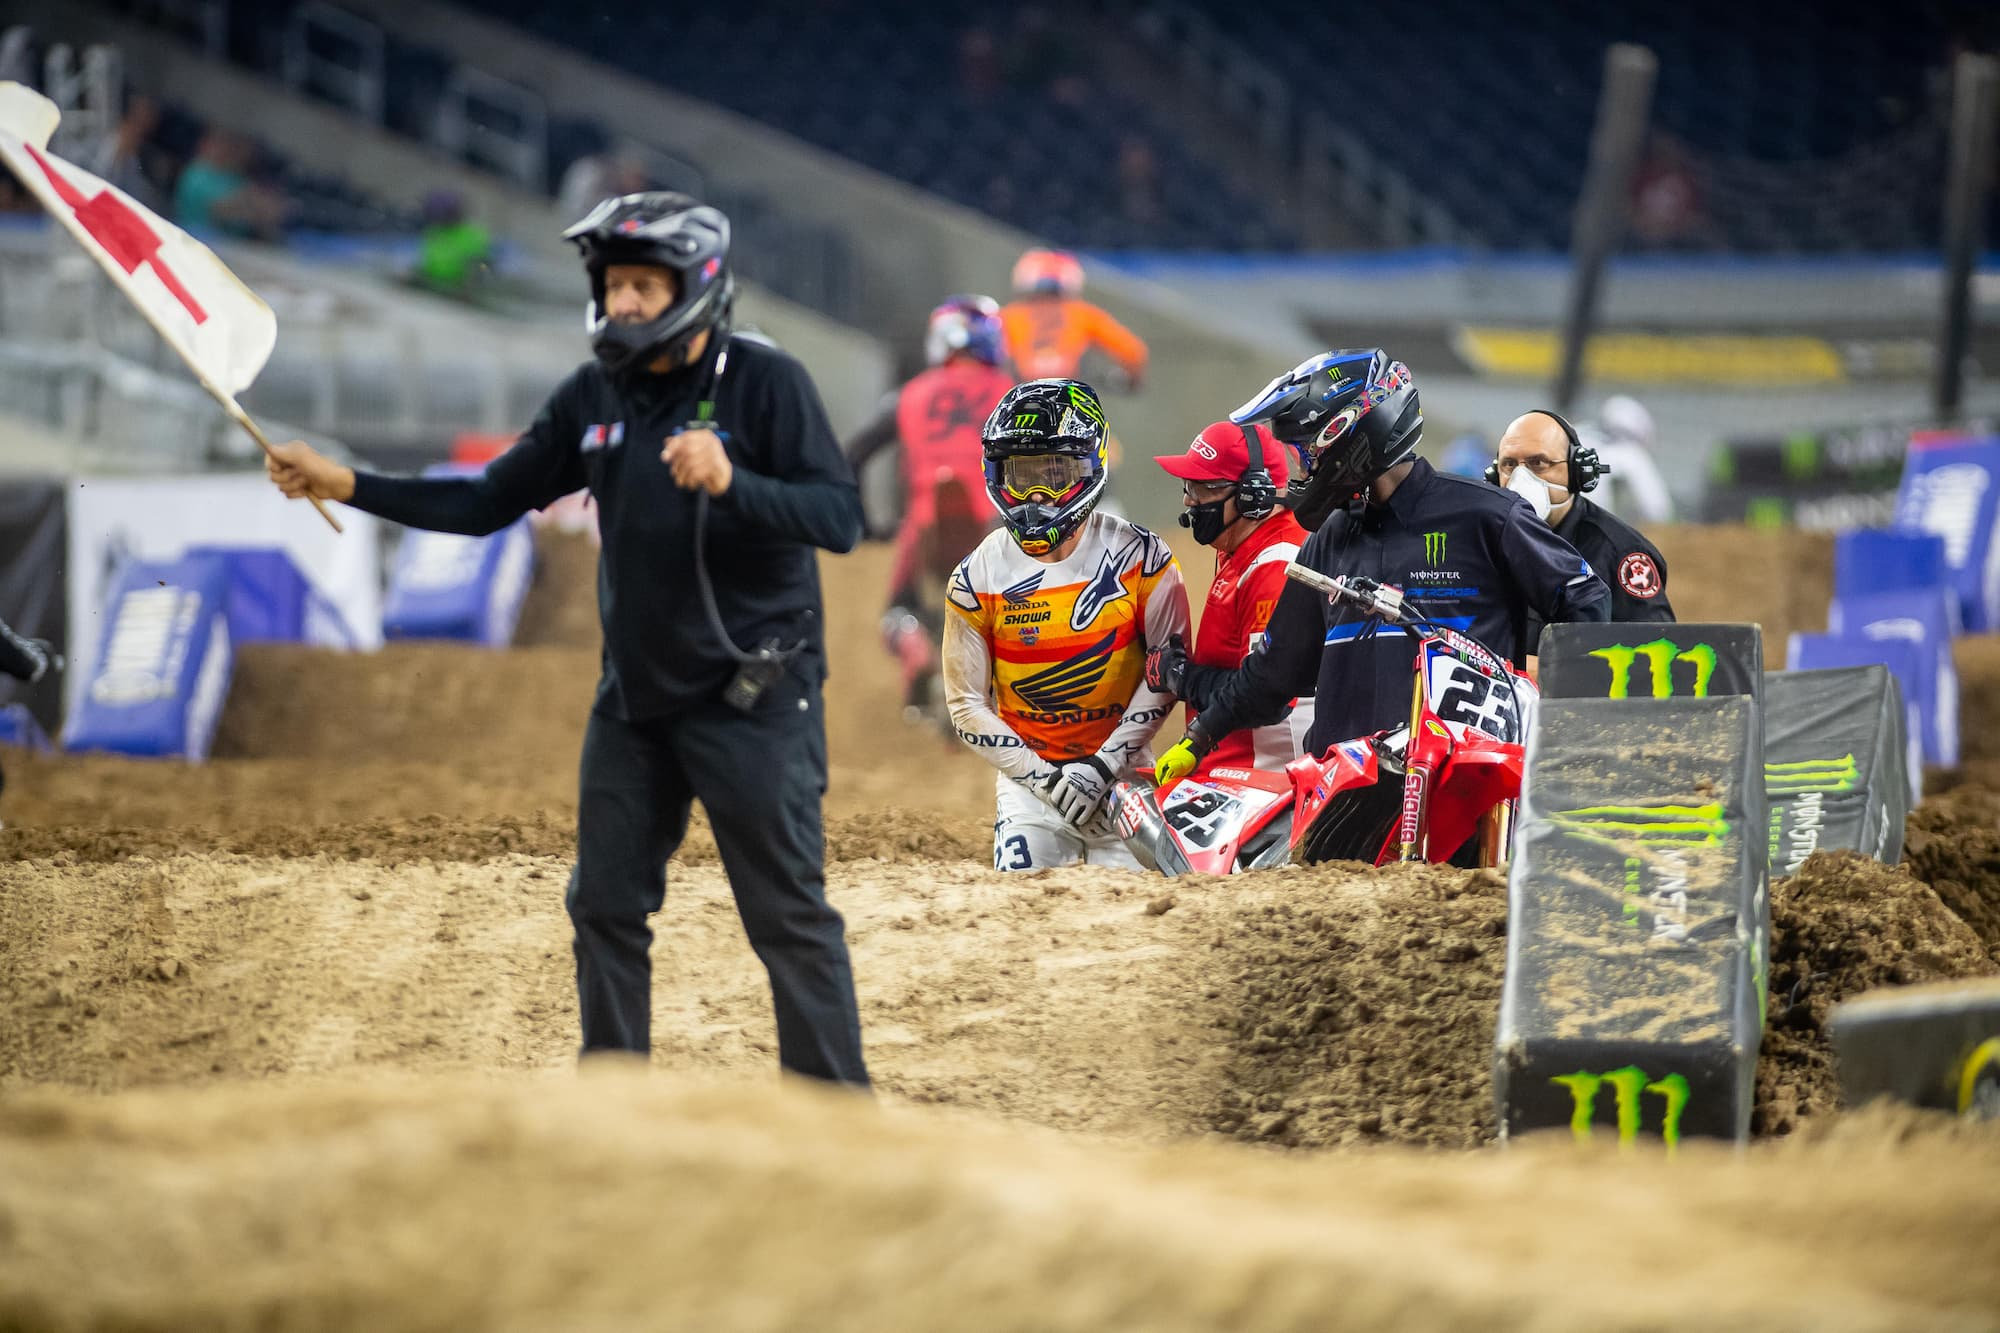 Chase Sexton crashes hard in the 2021 Houston 2 450SX race. He currently plans to compete in Saturday's Houston 3 round.